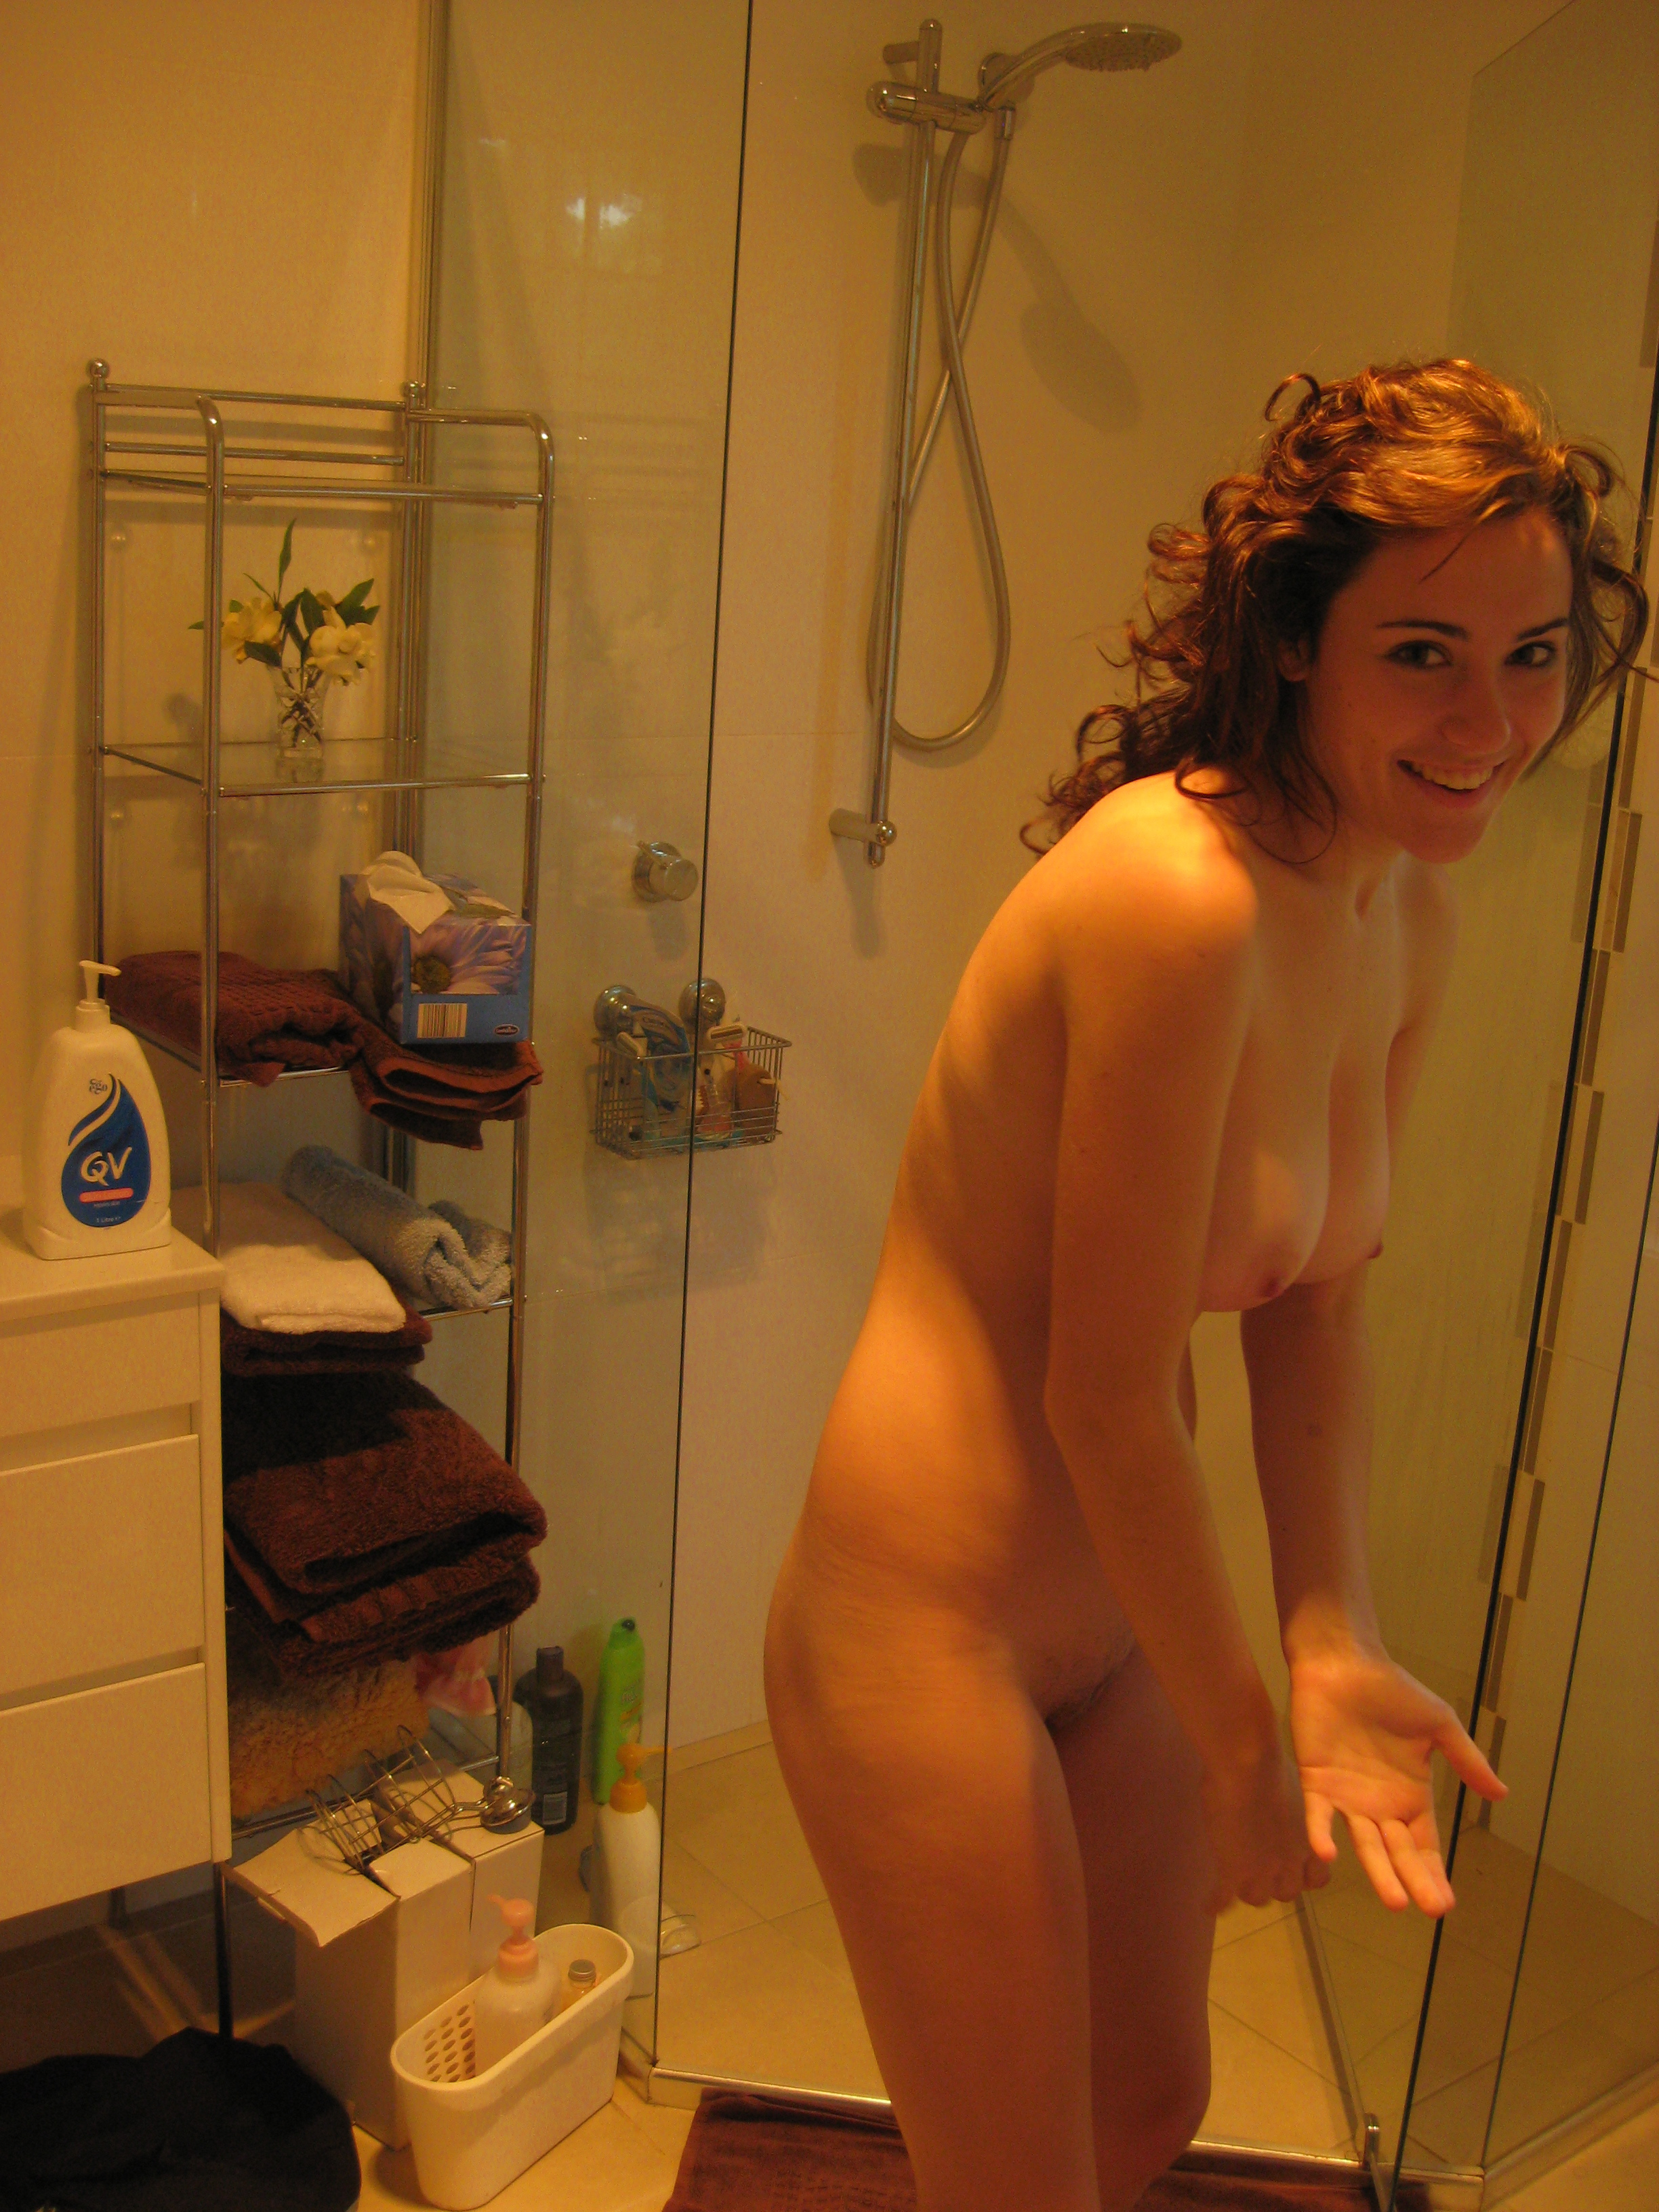 Understand nude bathroom in women hot day, purpose